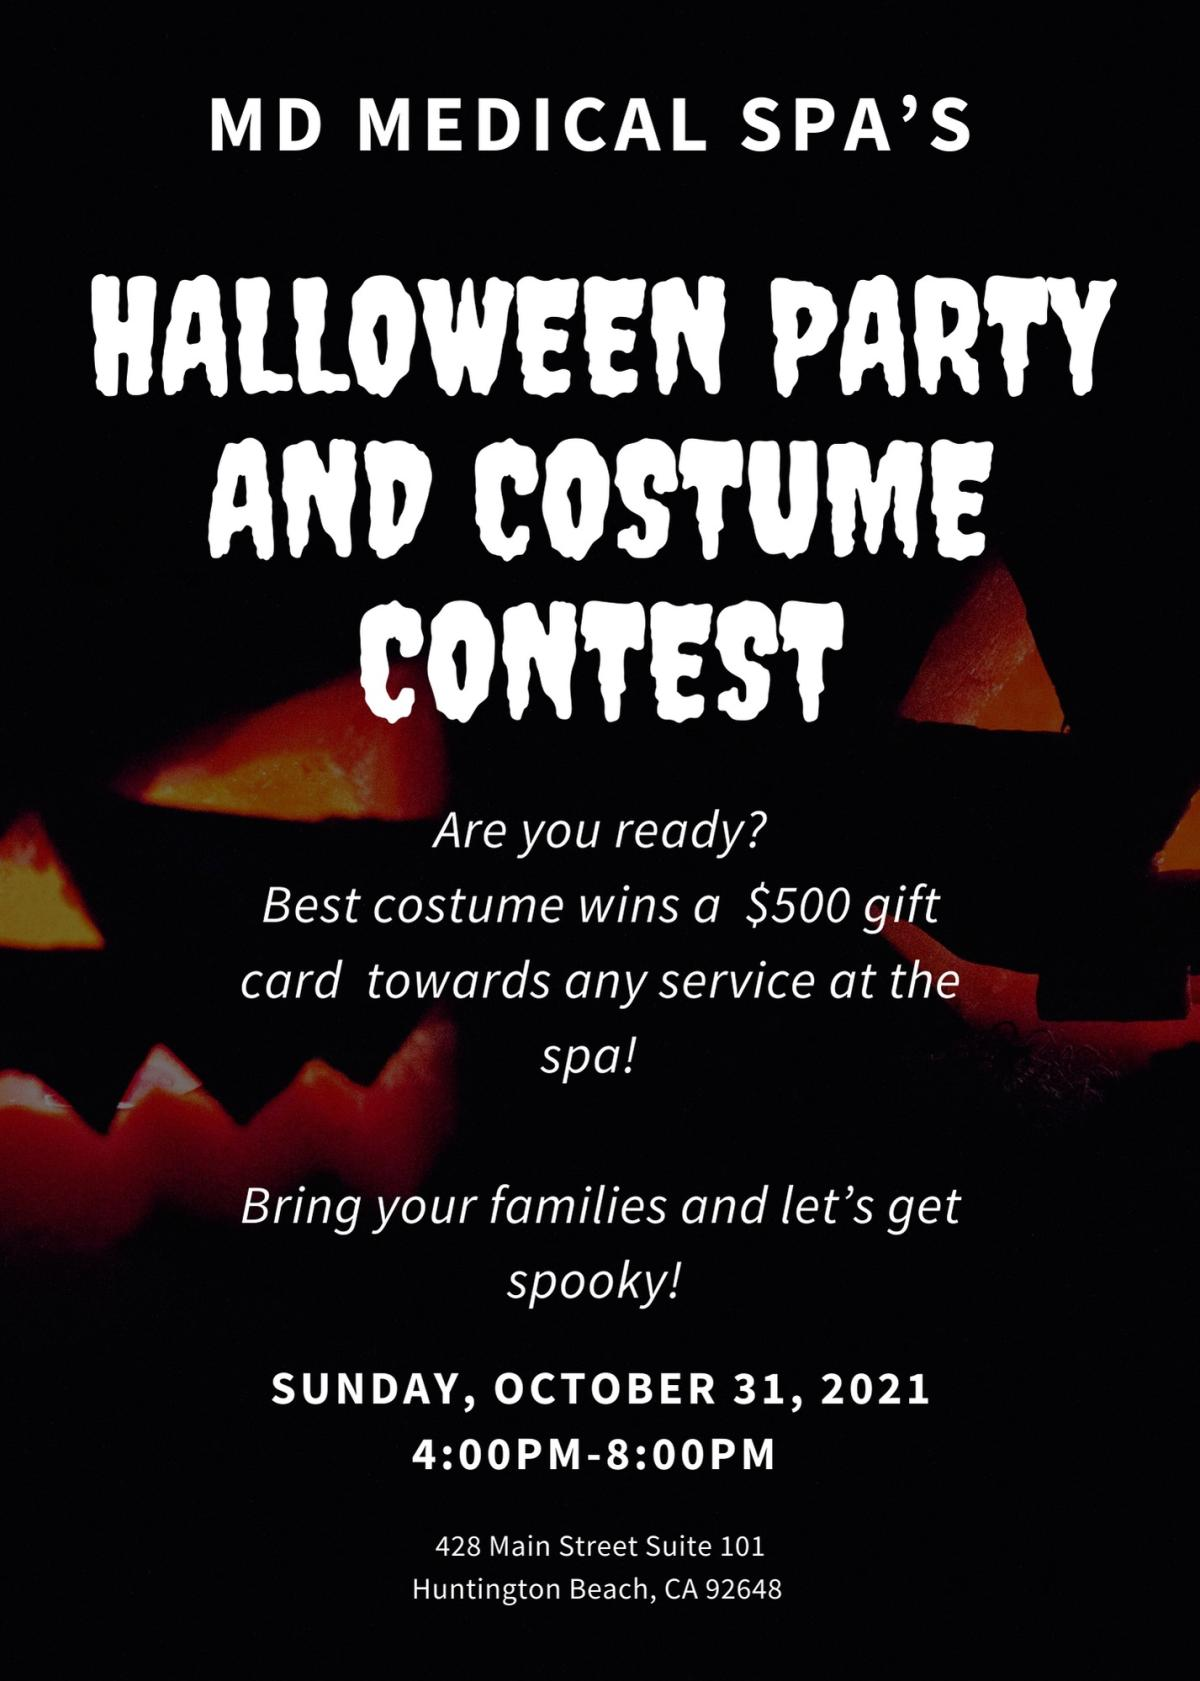 MD Medical Spa Halloween Party